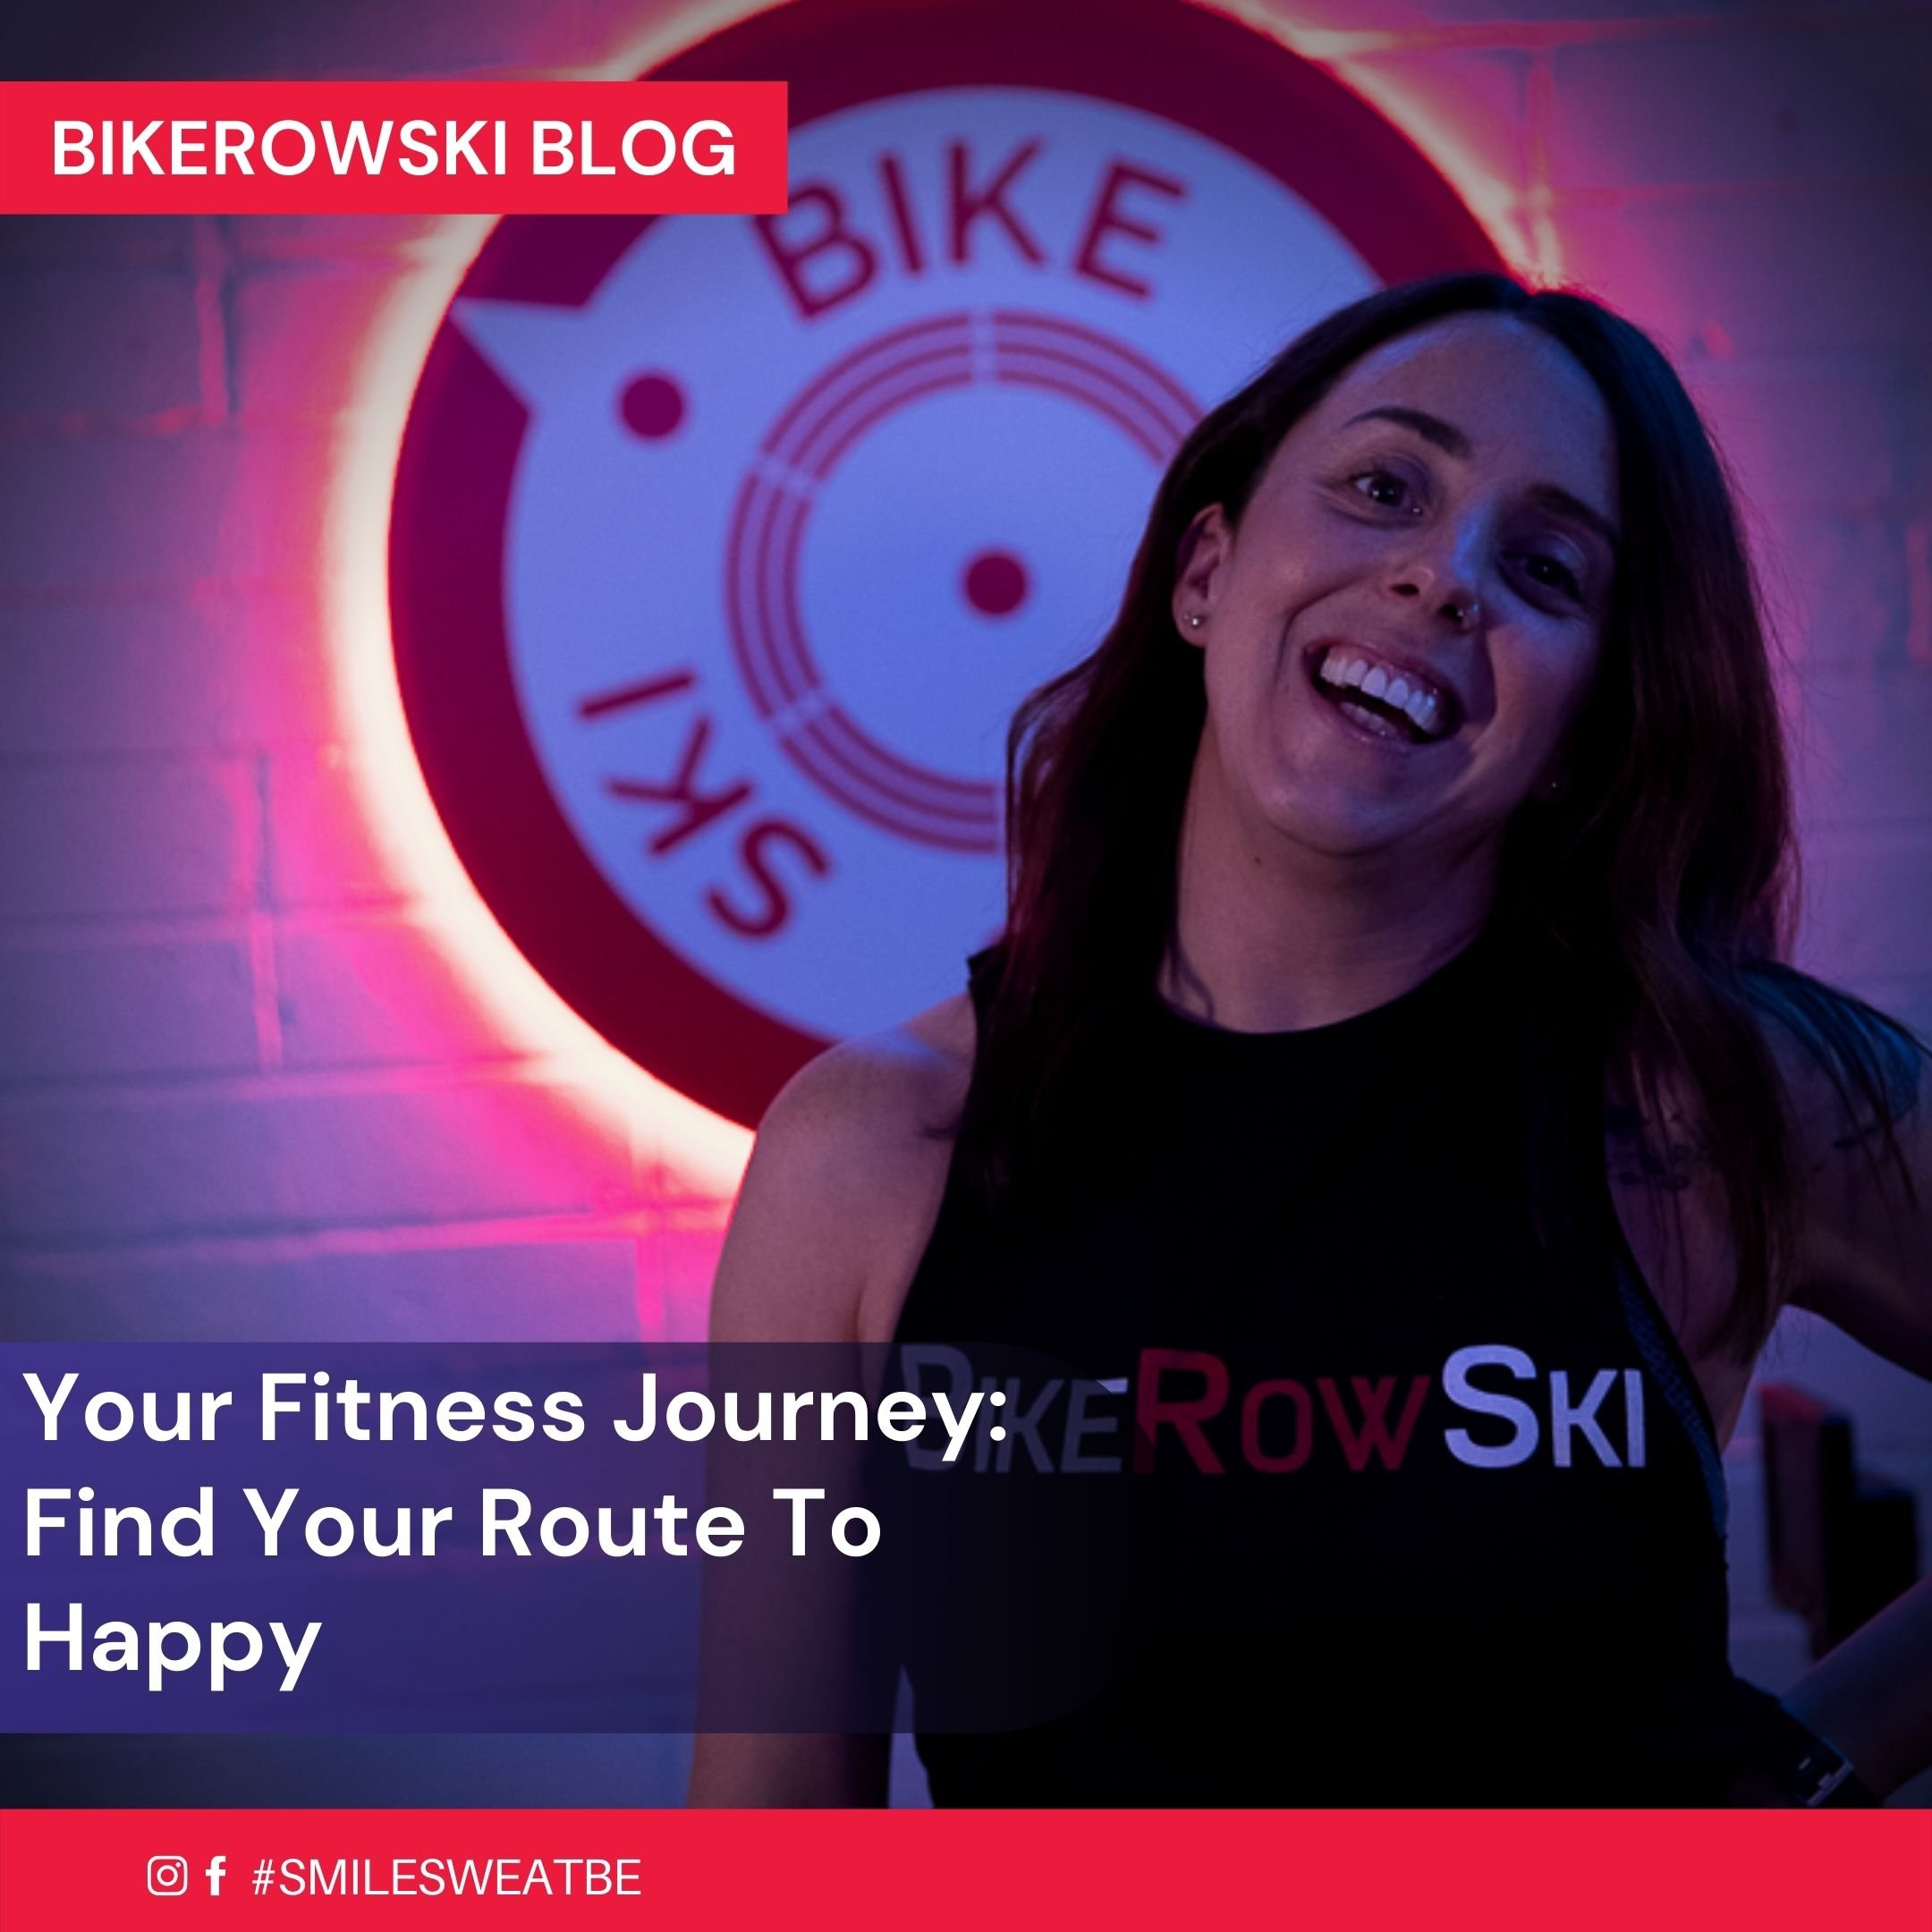 Your Fitness Journey: Your Route To Happiness